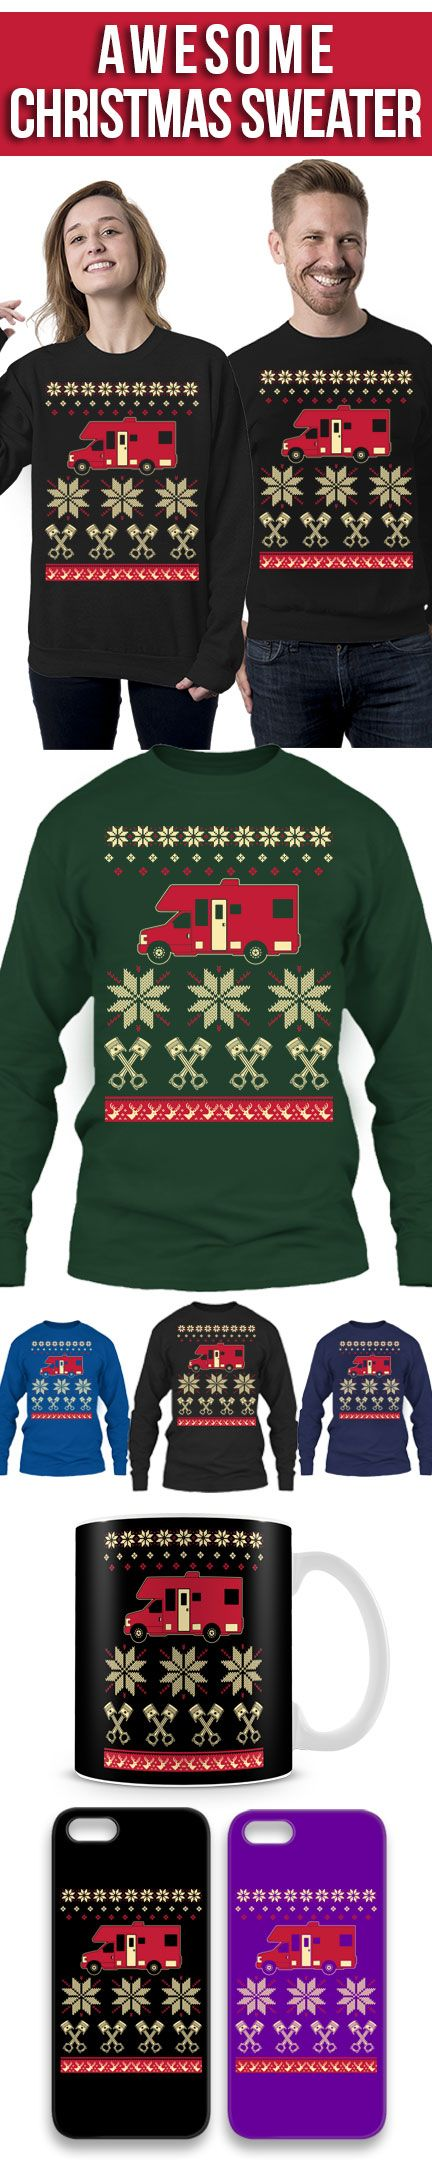 RV Van Ugly Christmas Sweater! Click The Image To Buy It Now or Tag Someone You Want To Buy This For. #rv